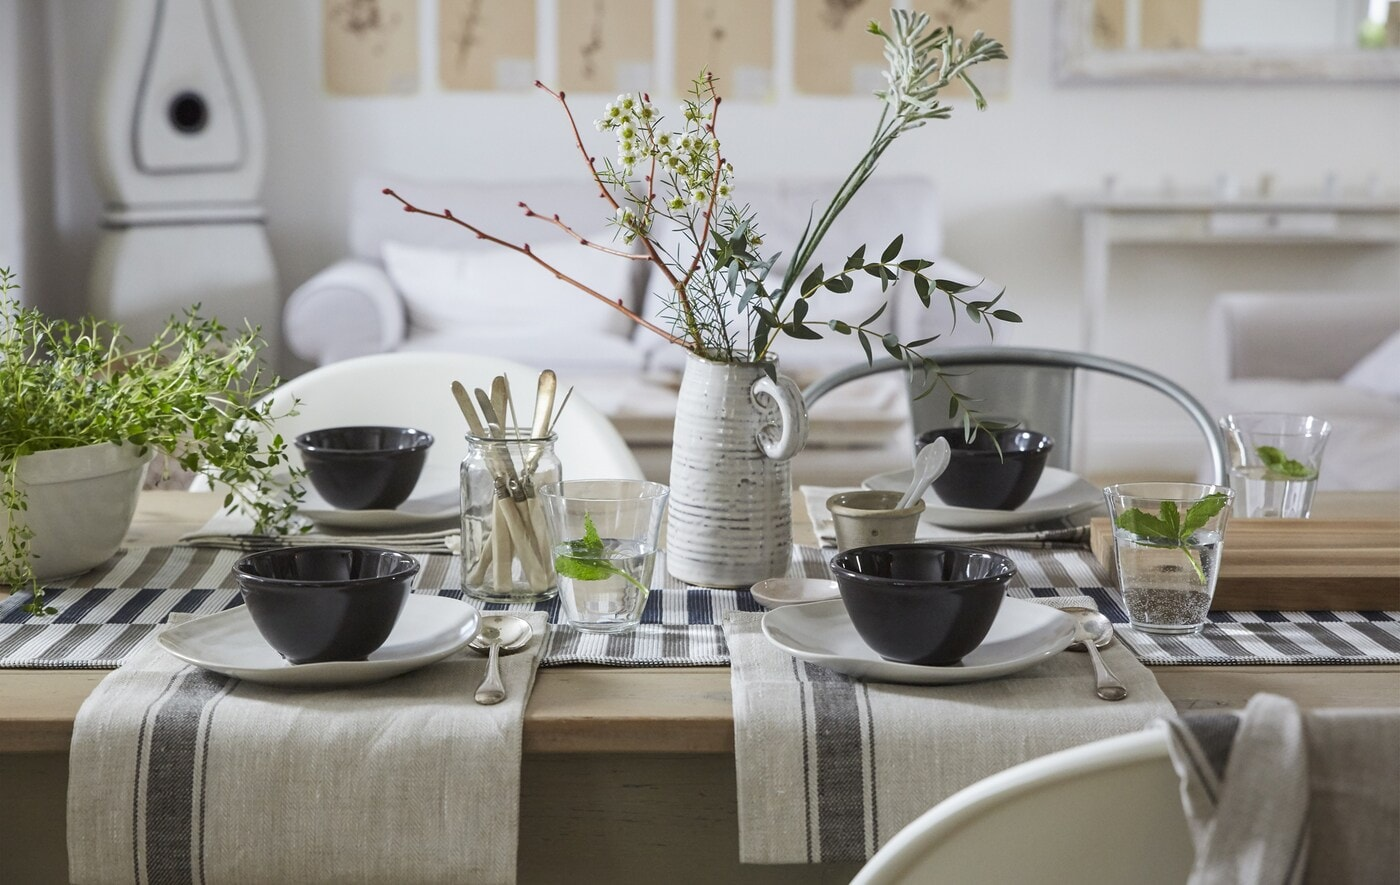 A neutral-coloured table setting with cotton napkins, simple place settings and a natural centrepiece.